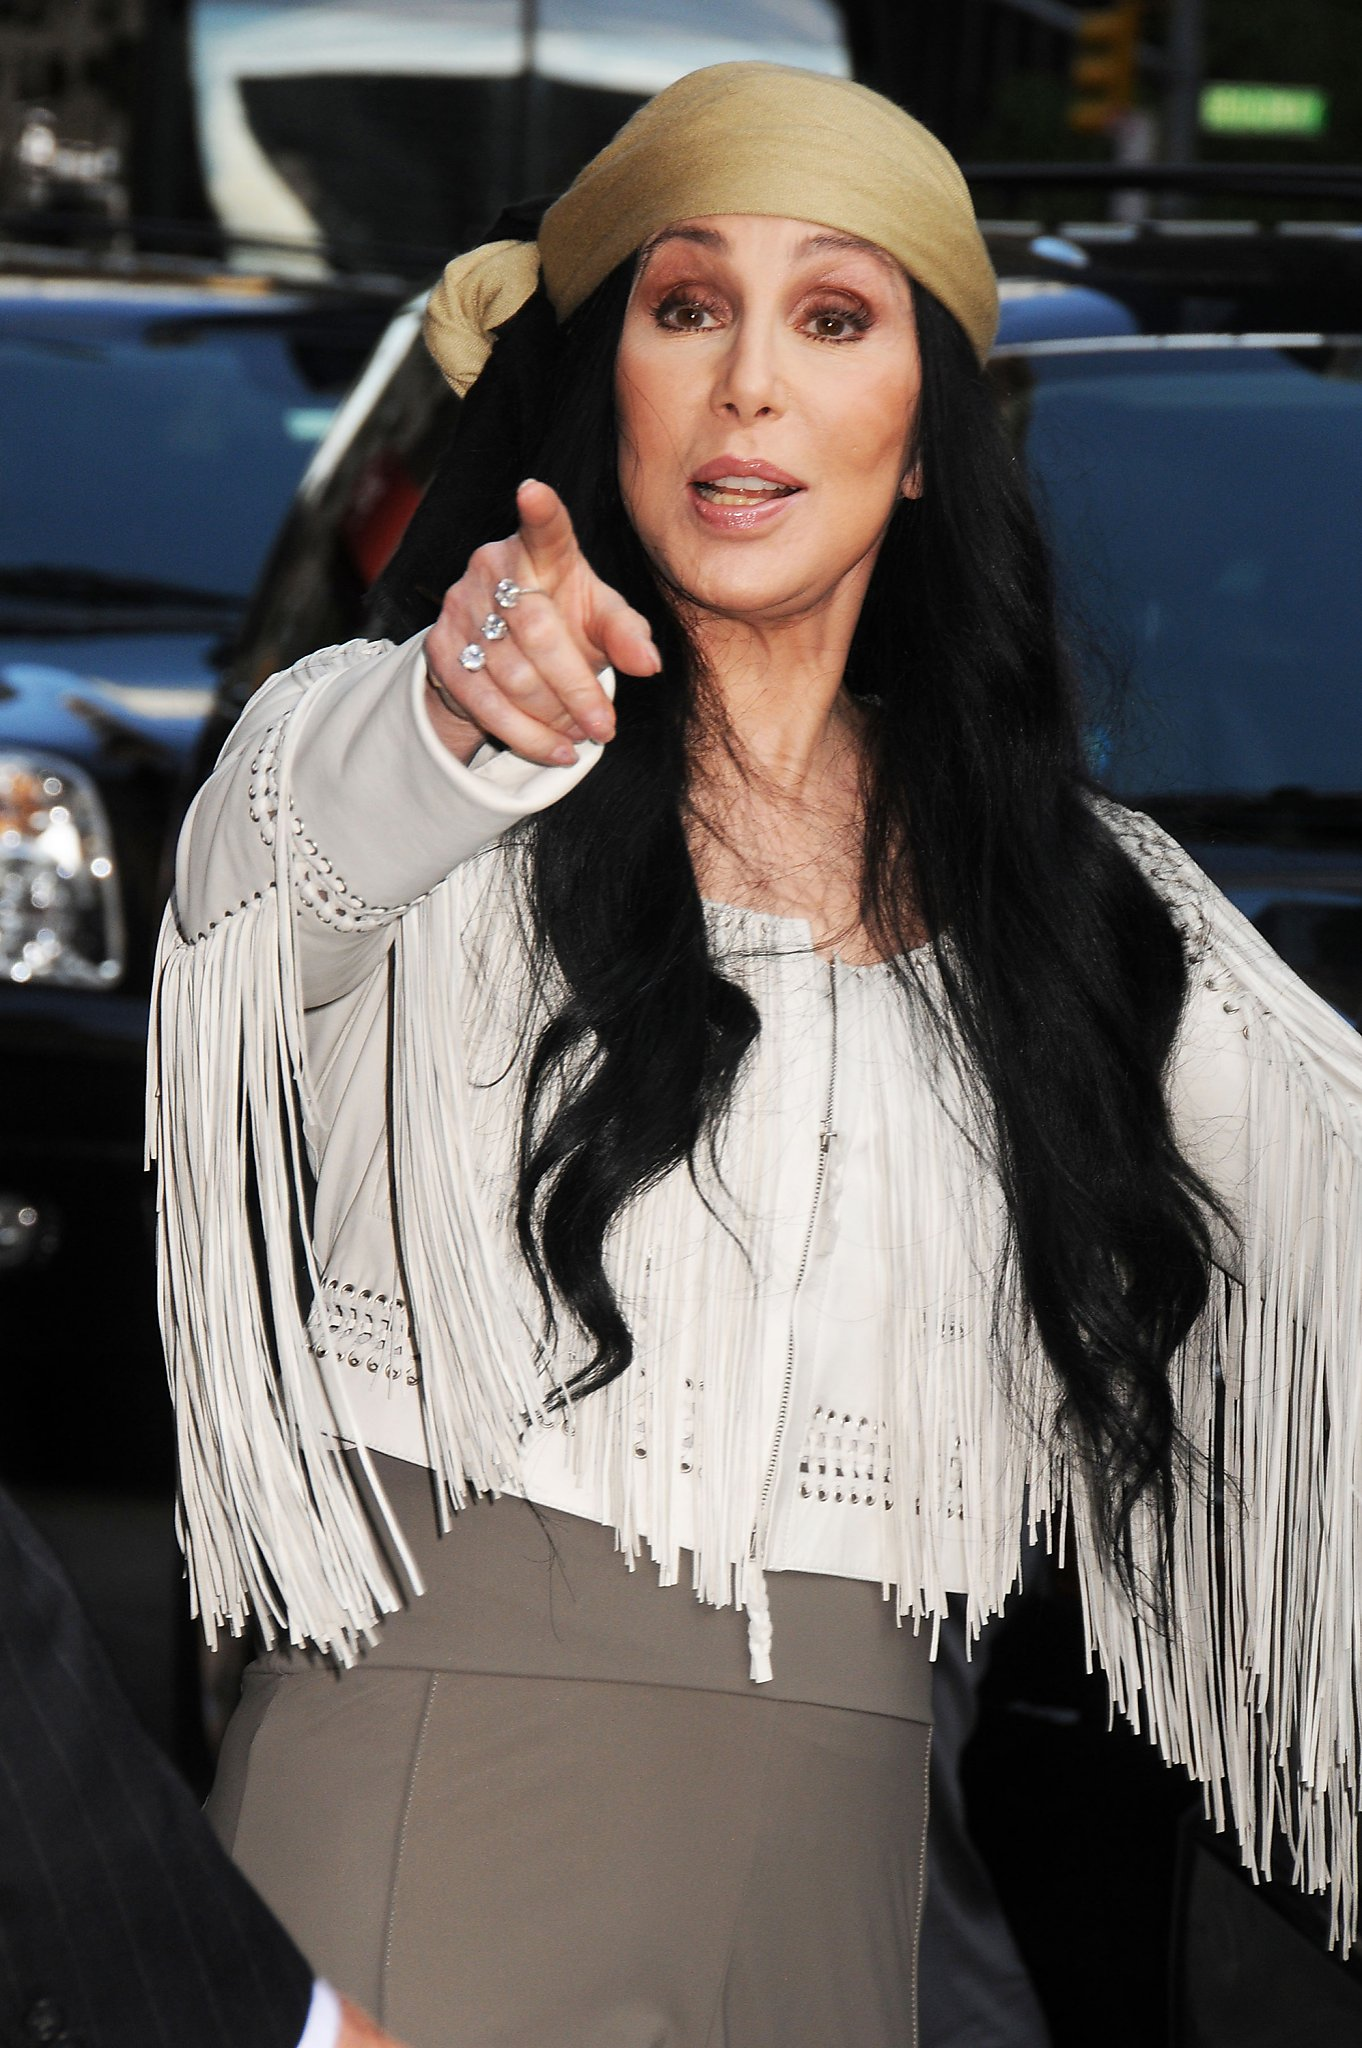 Cher wants Rep. Eric Swalwell on the 2020 ticket - SFGate